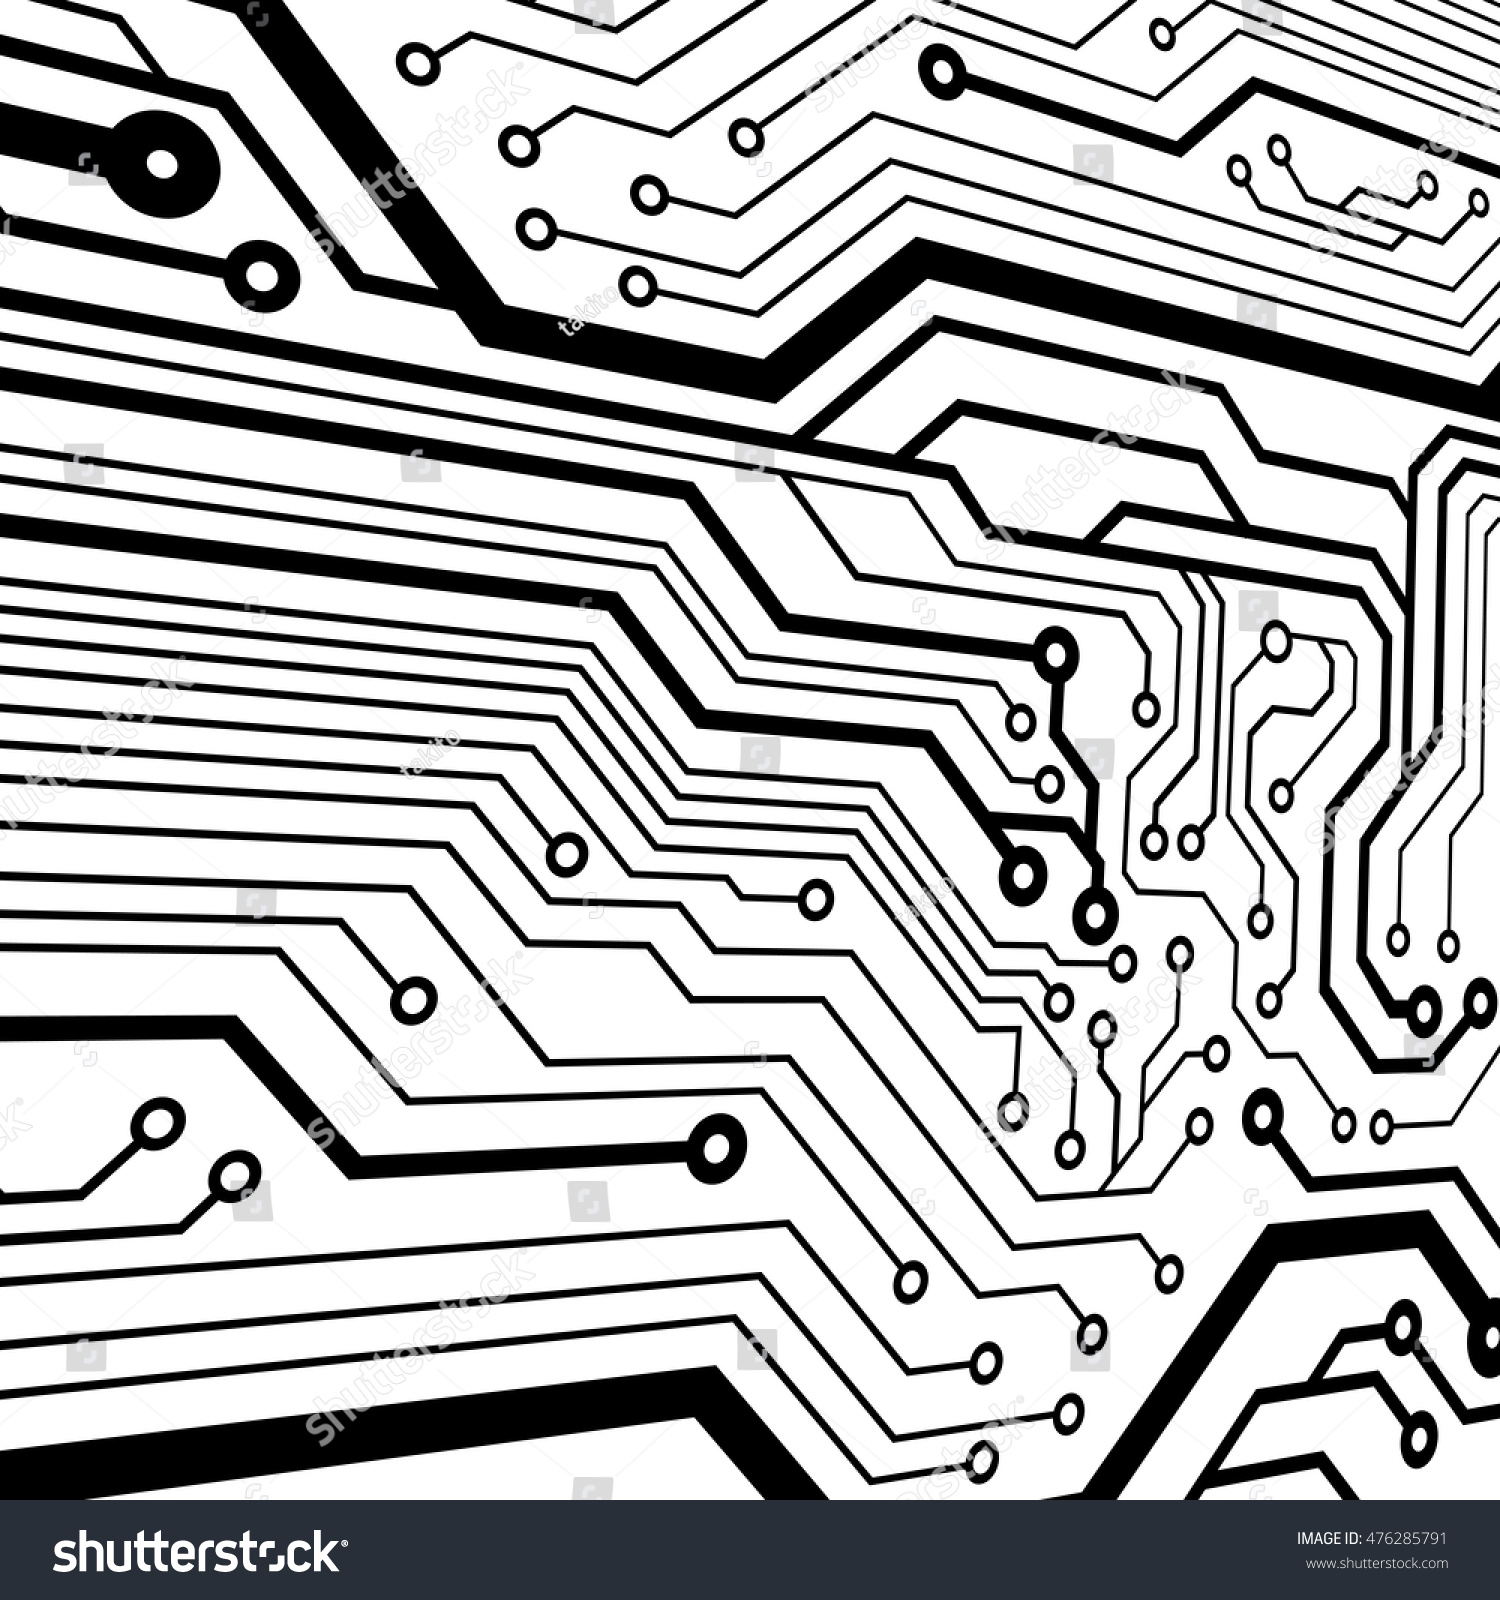 Vector Circuit Board Illustration Stock Royalty Free